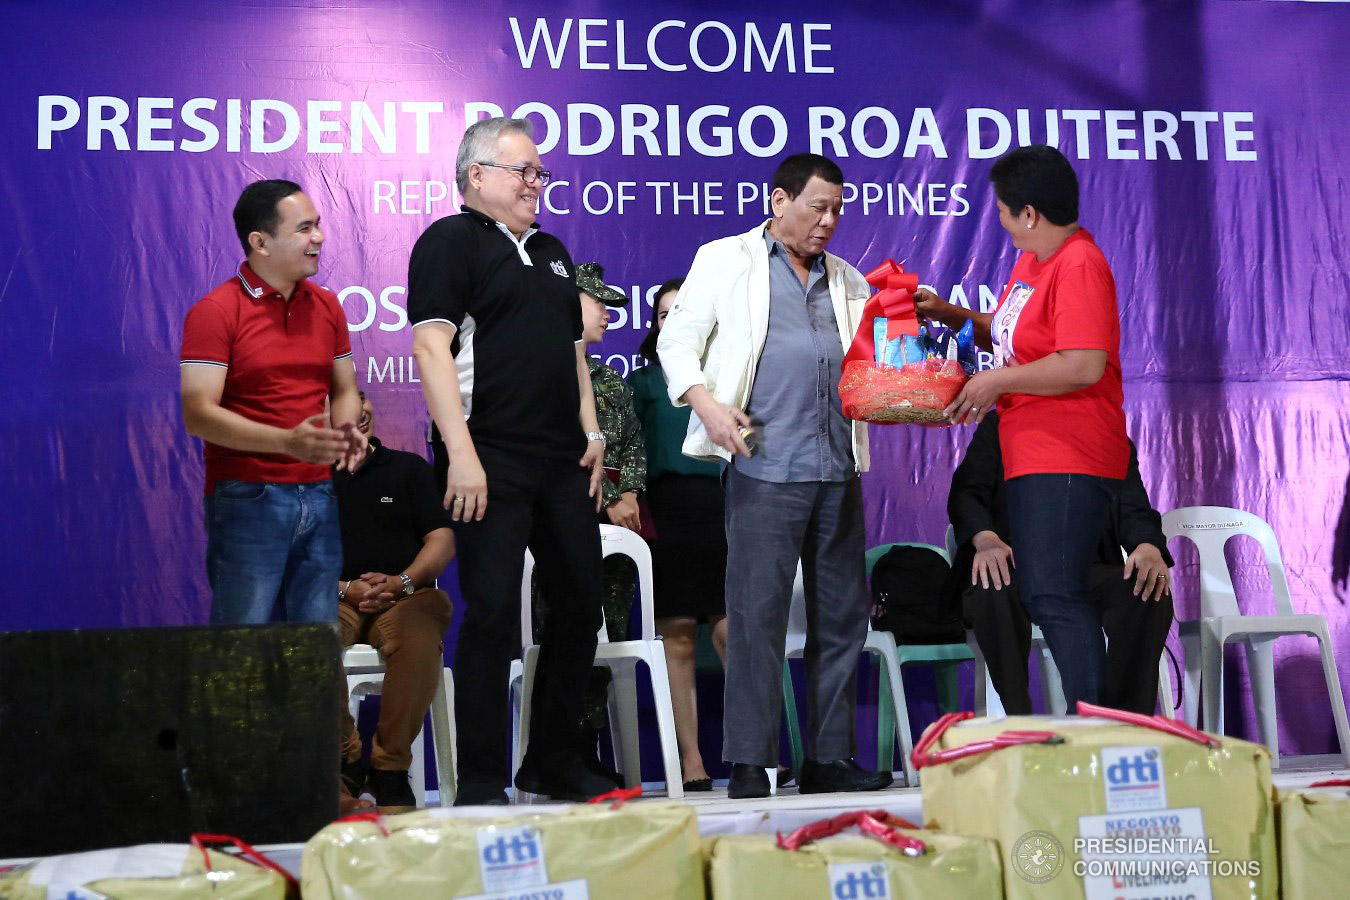 President Rodrigo Roa Duterte leads the distribution of livelihood packages to beneficiaries during the Negosyo Serbisyo sa Barangay held at the Patio Milagros Minitel and Resort in Dimasalang, Masbate on January 9, 2019. Assisting the President is Trade and Industry Secretary Ramon Lopez. VALERIE ESCALERA/PRESIDENTIAL PHOTO